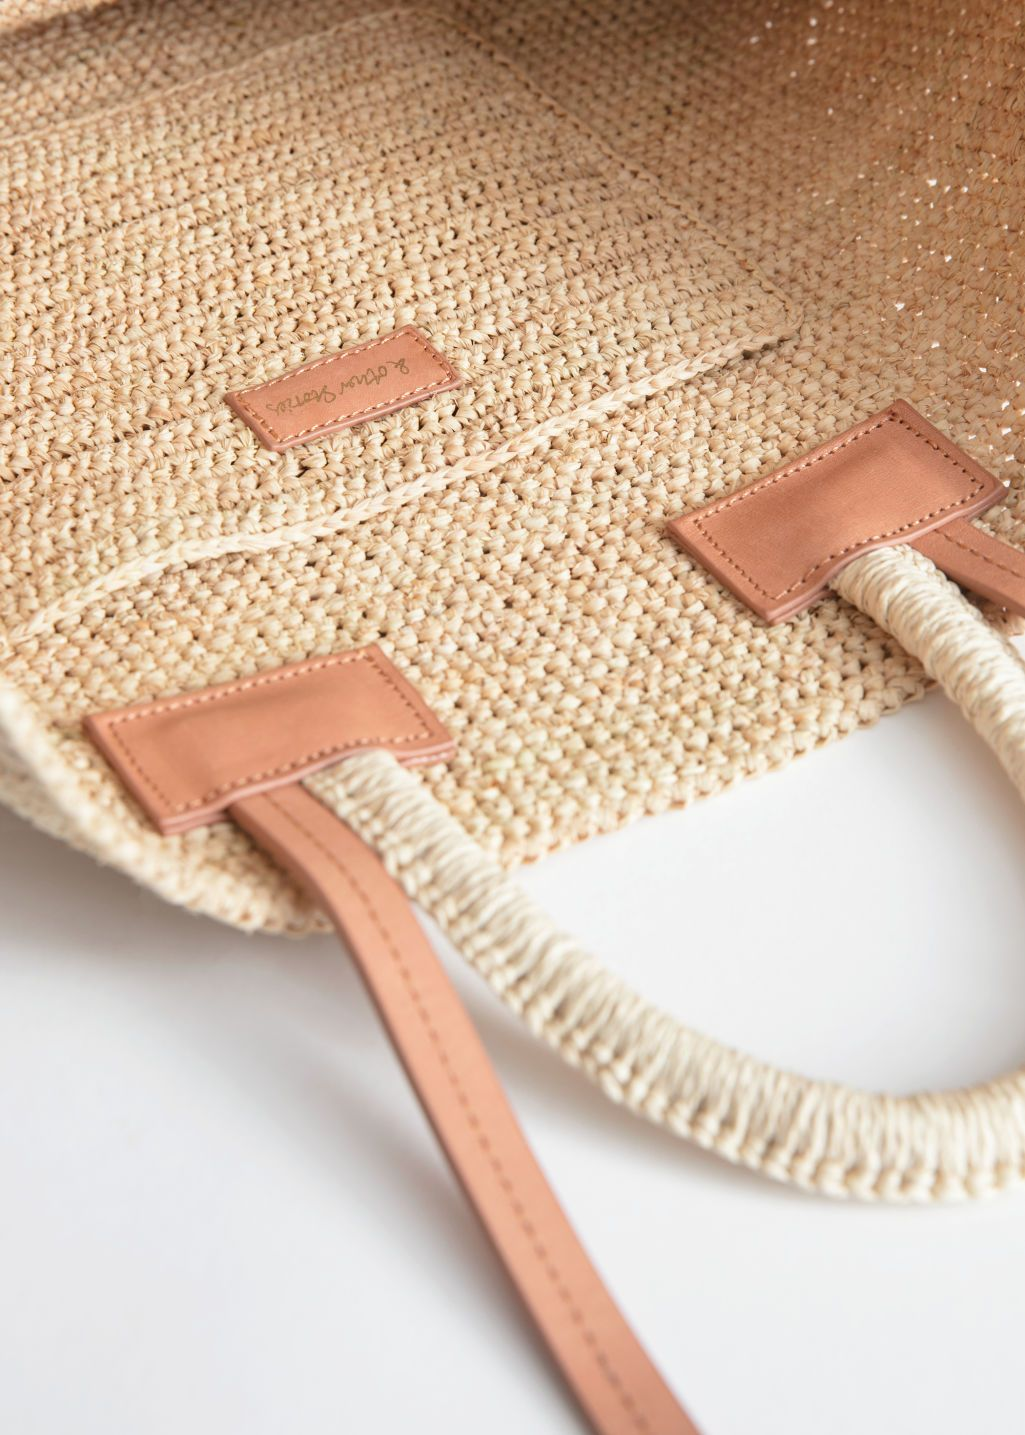 66a249d2b Large Woven Straw Tote - Beige - Straw bags - & Other Stories